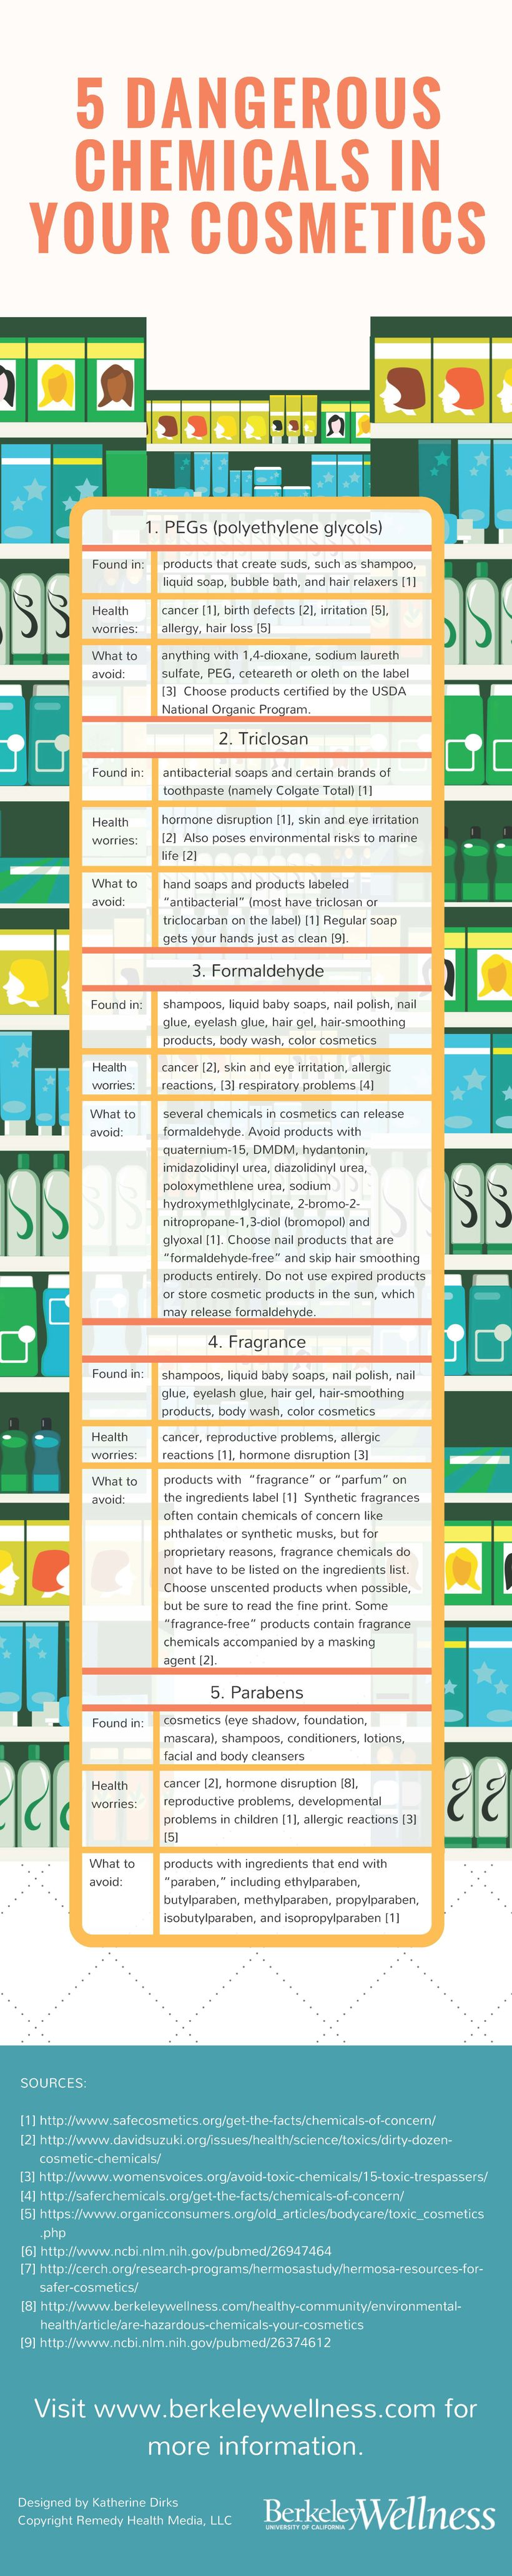 What to look for when buying cosmetics and personal care products.